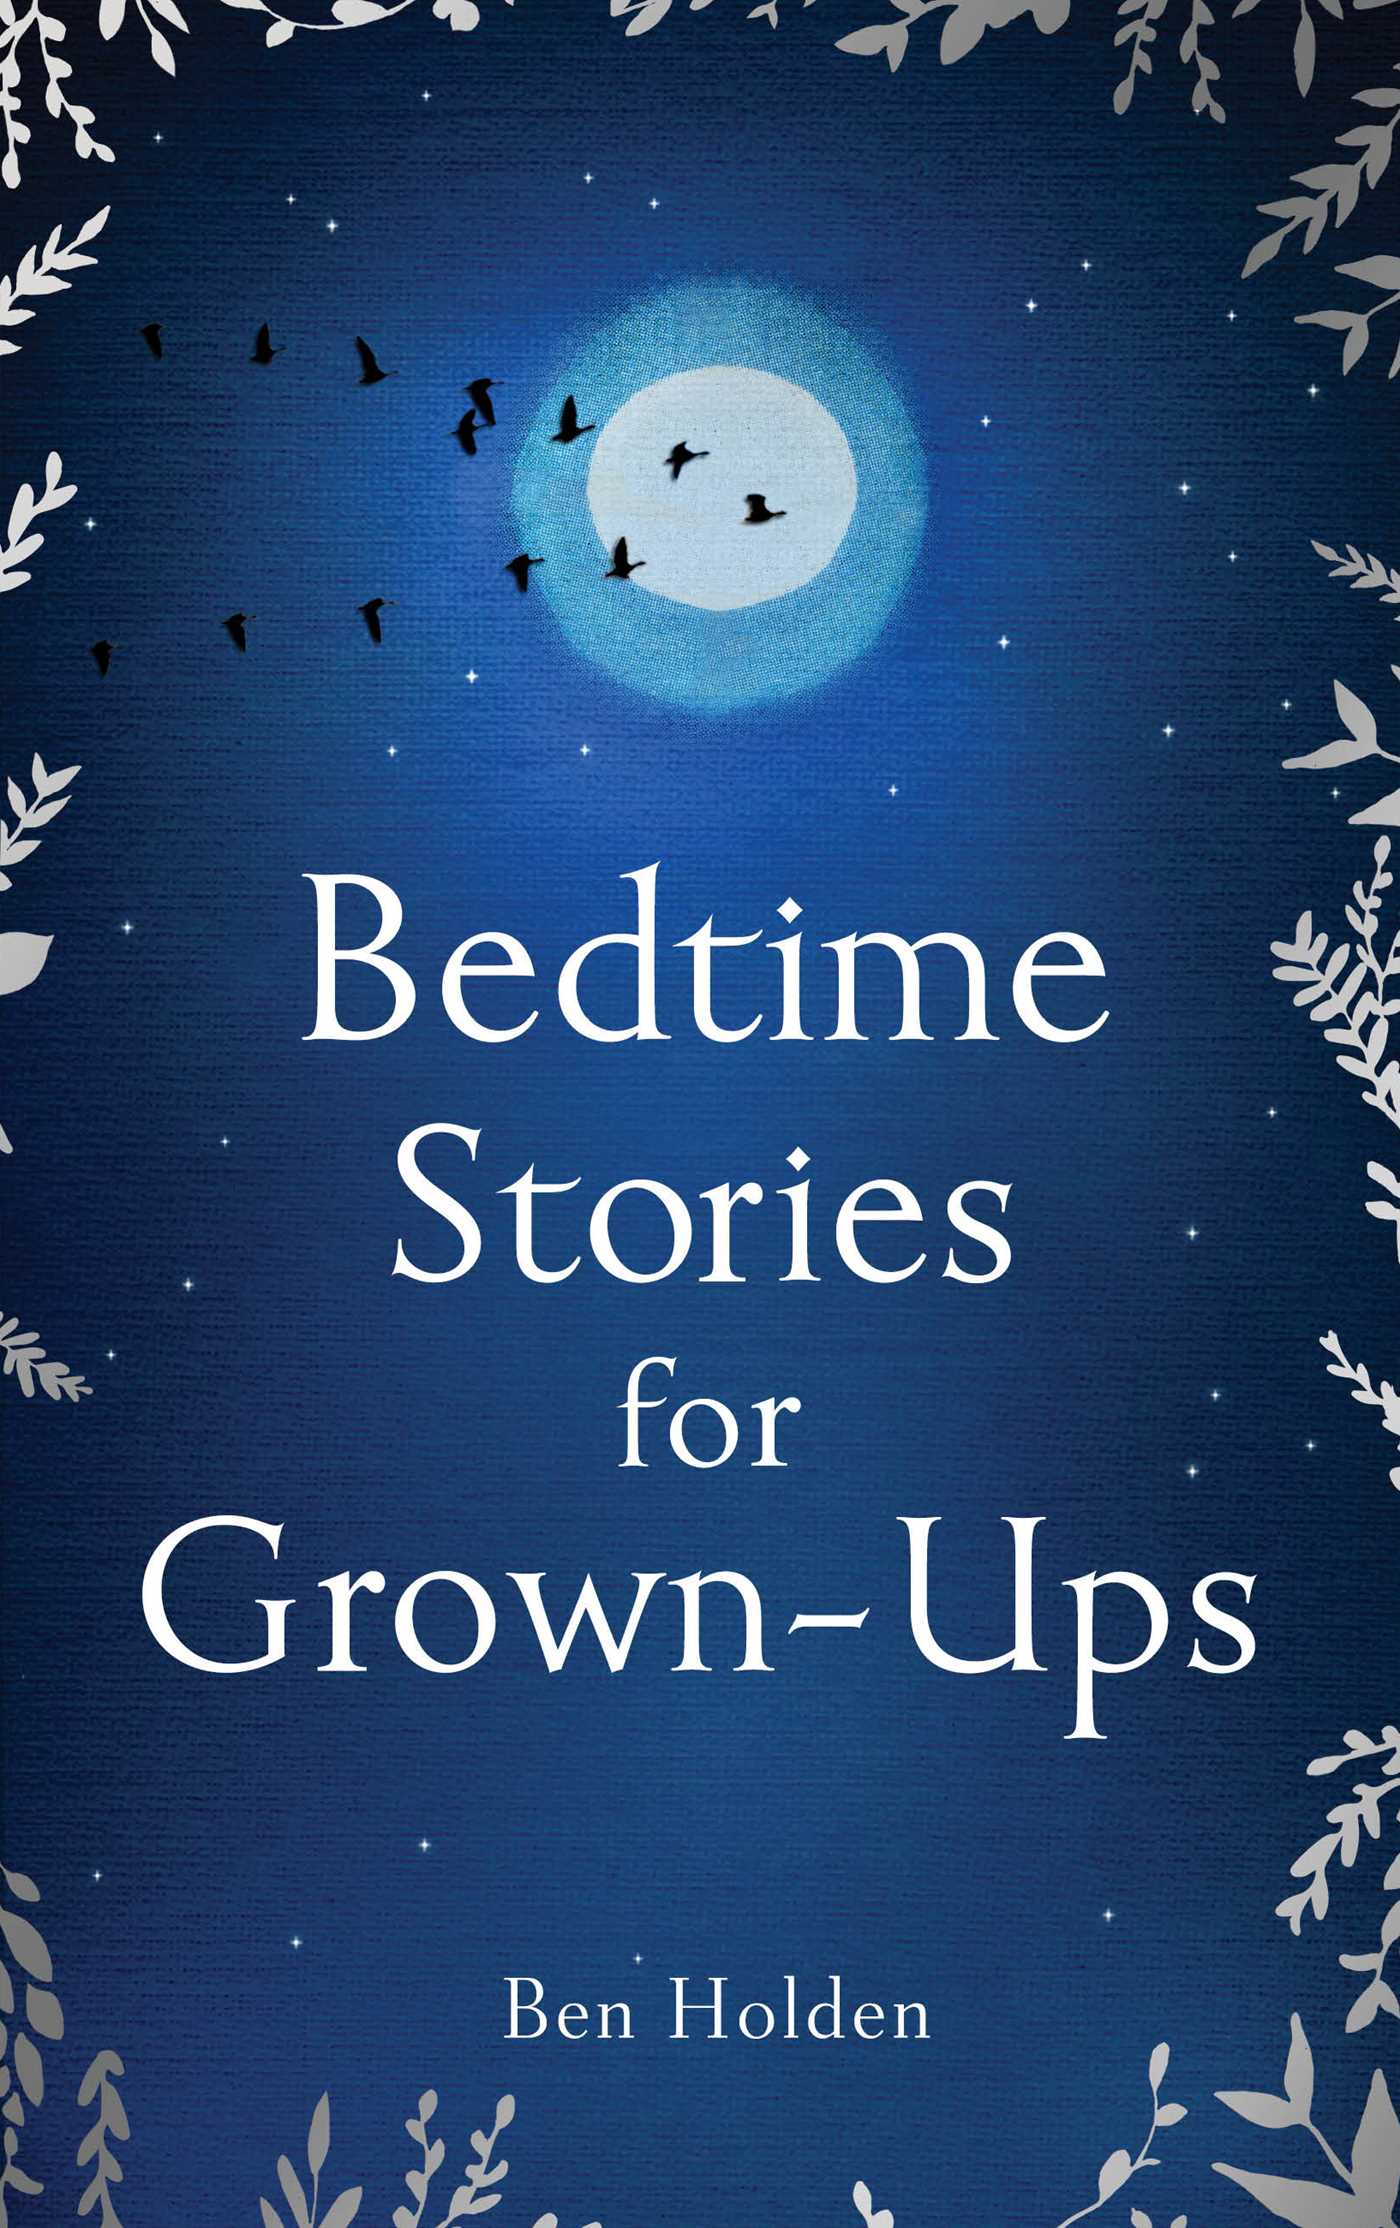 Bedtime stories for grown ups 9781471153754 hr